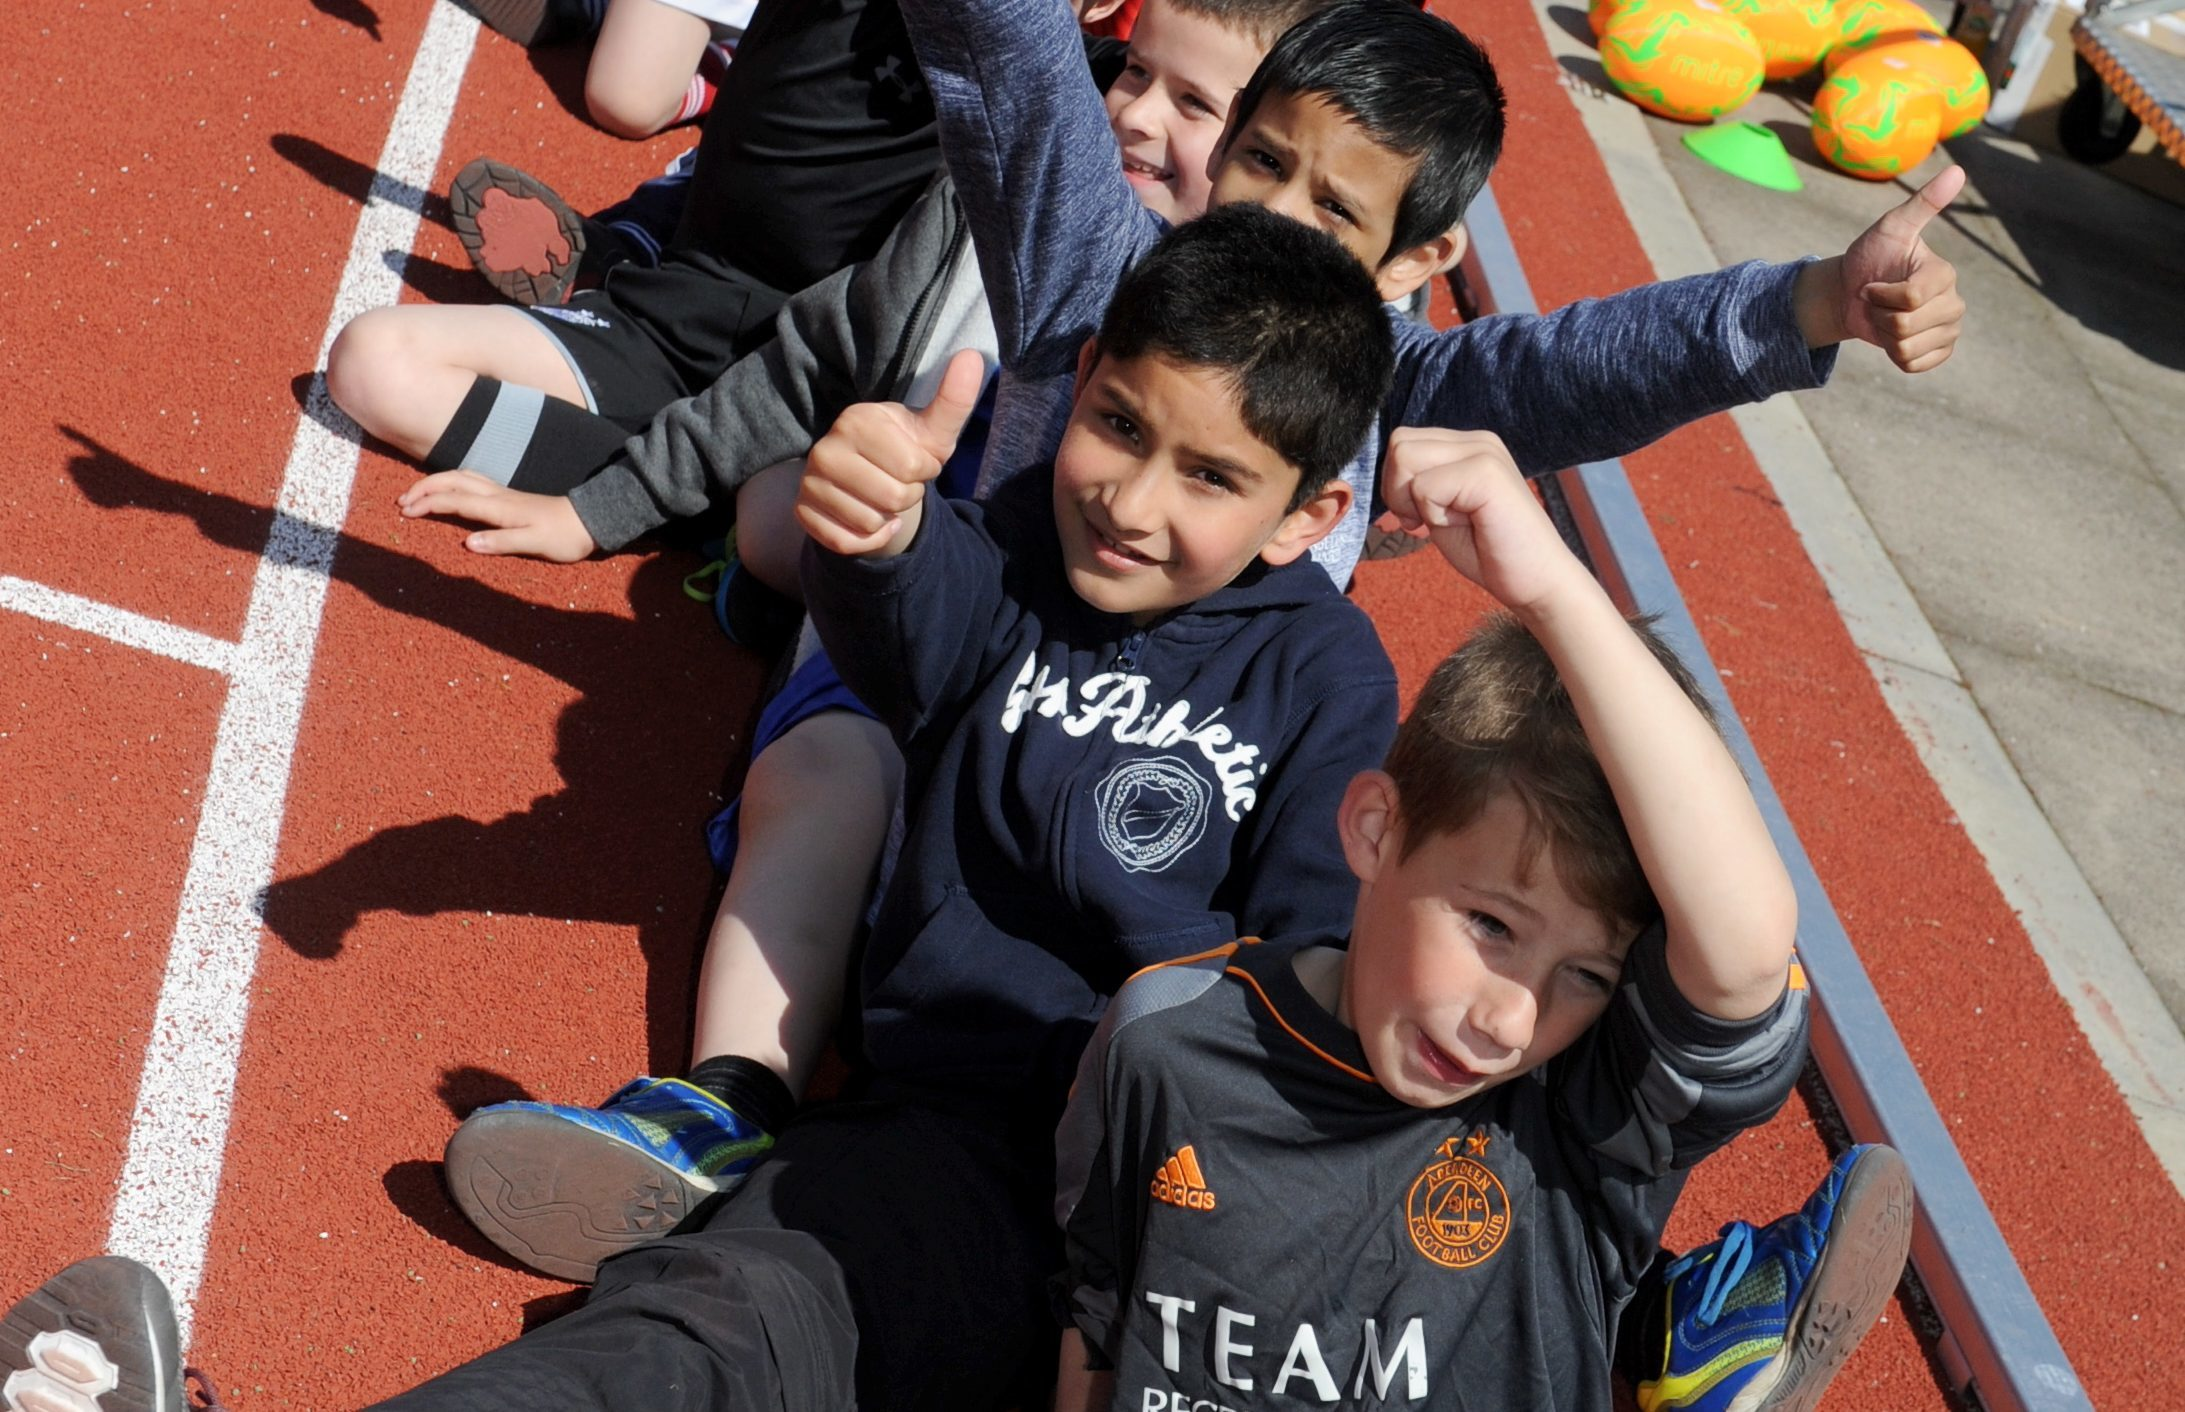 Some of the children taking part in last year's event.